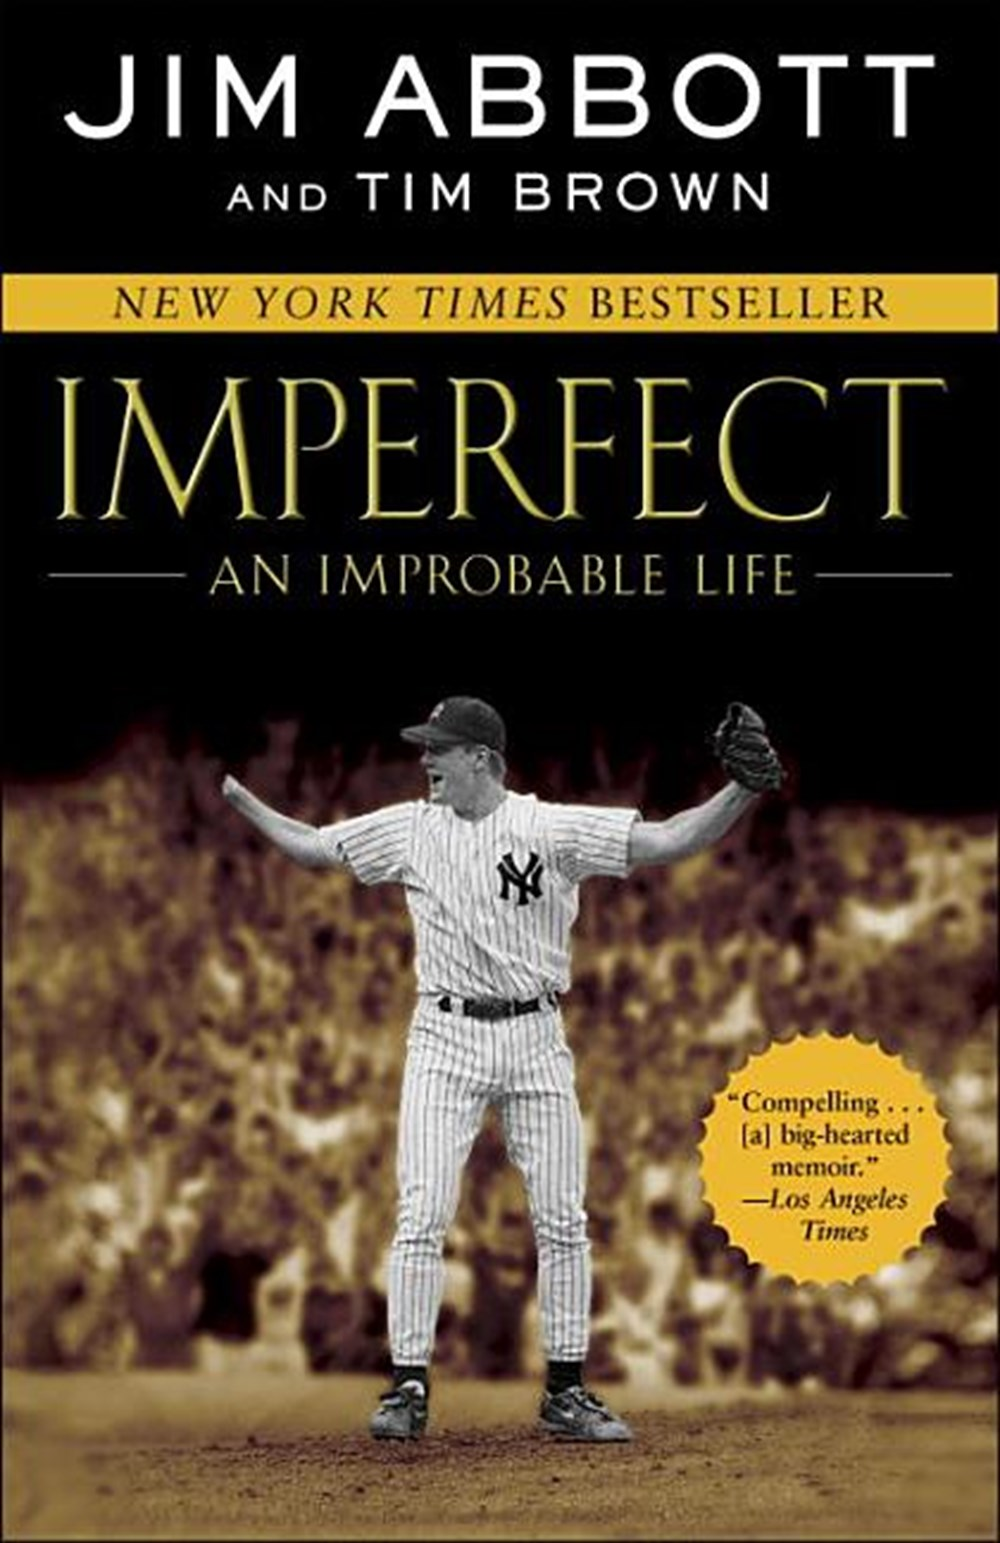 Imperfect An Improbable Life